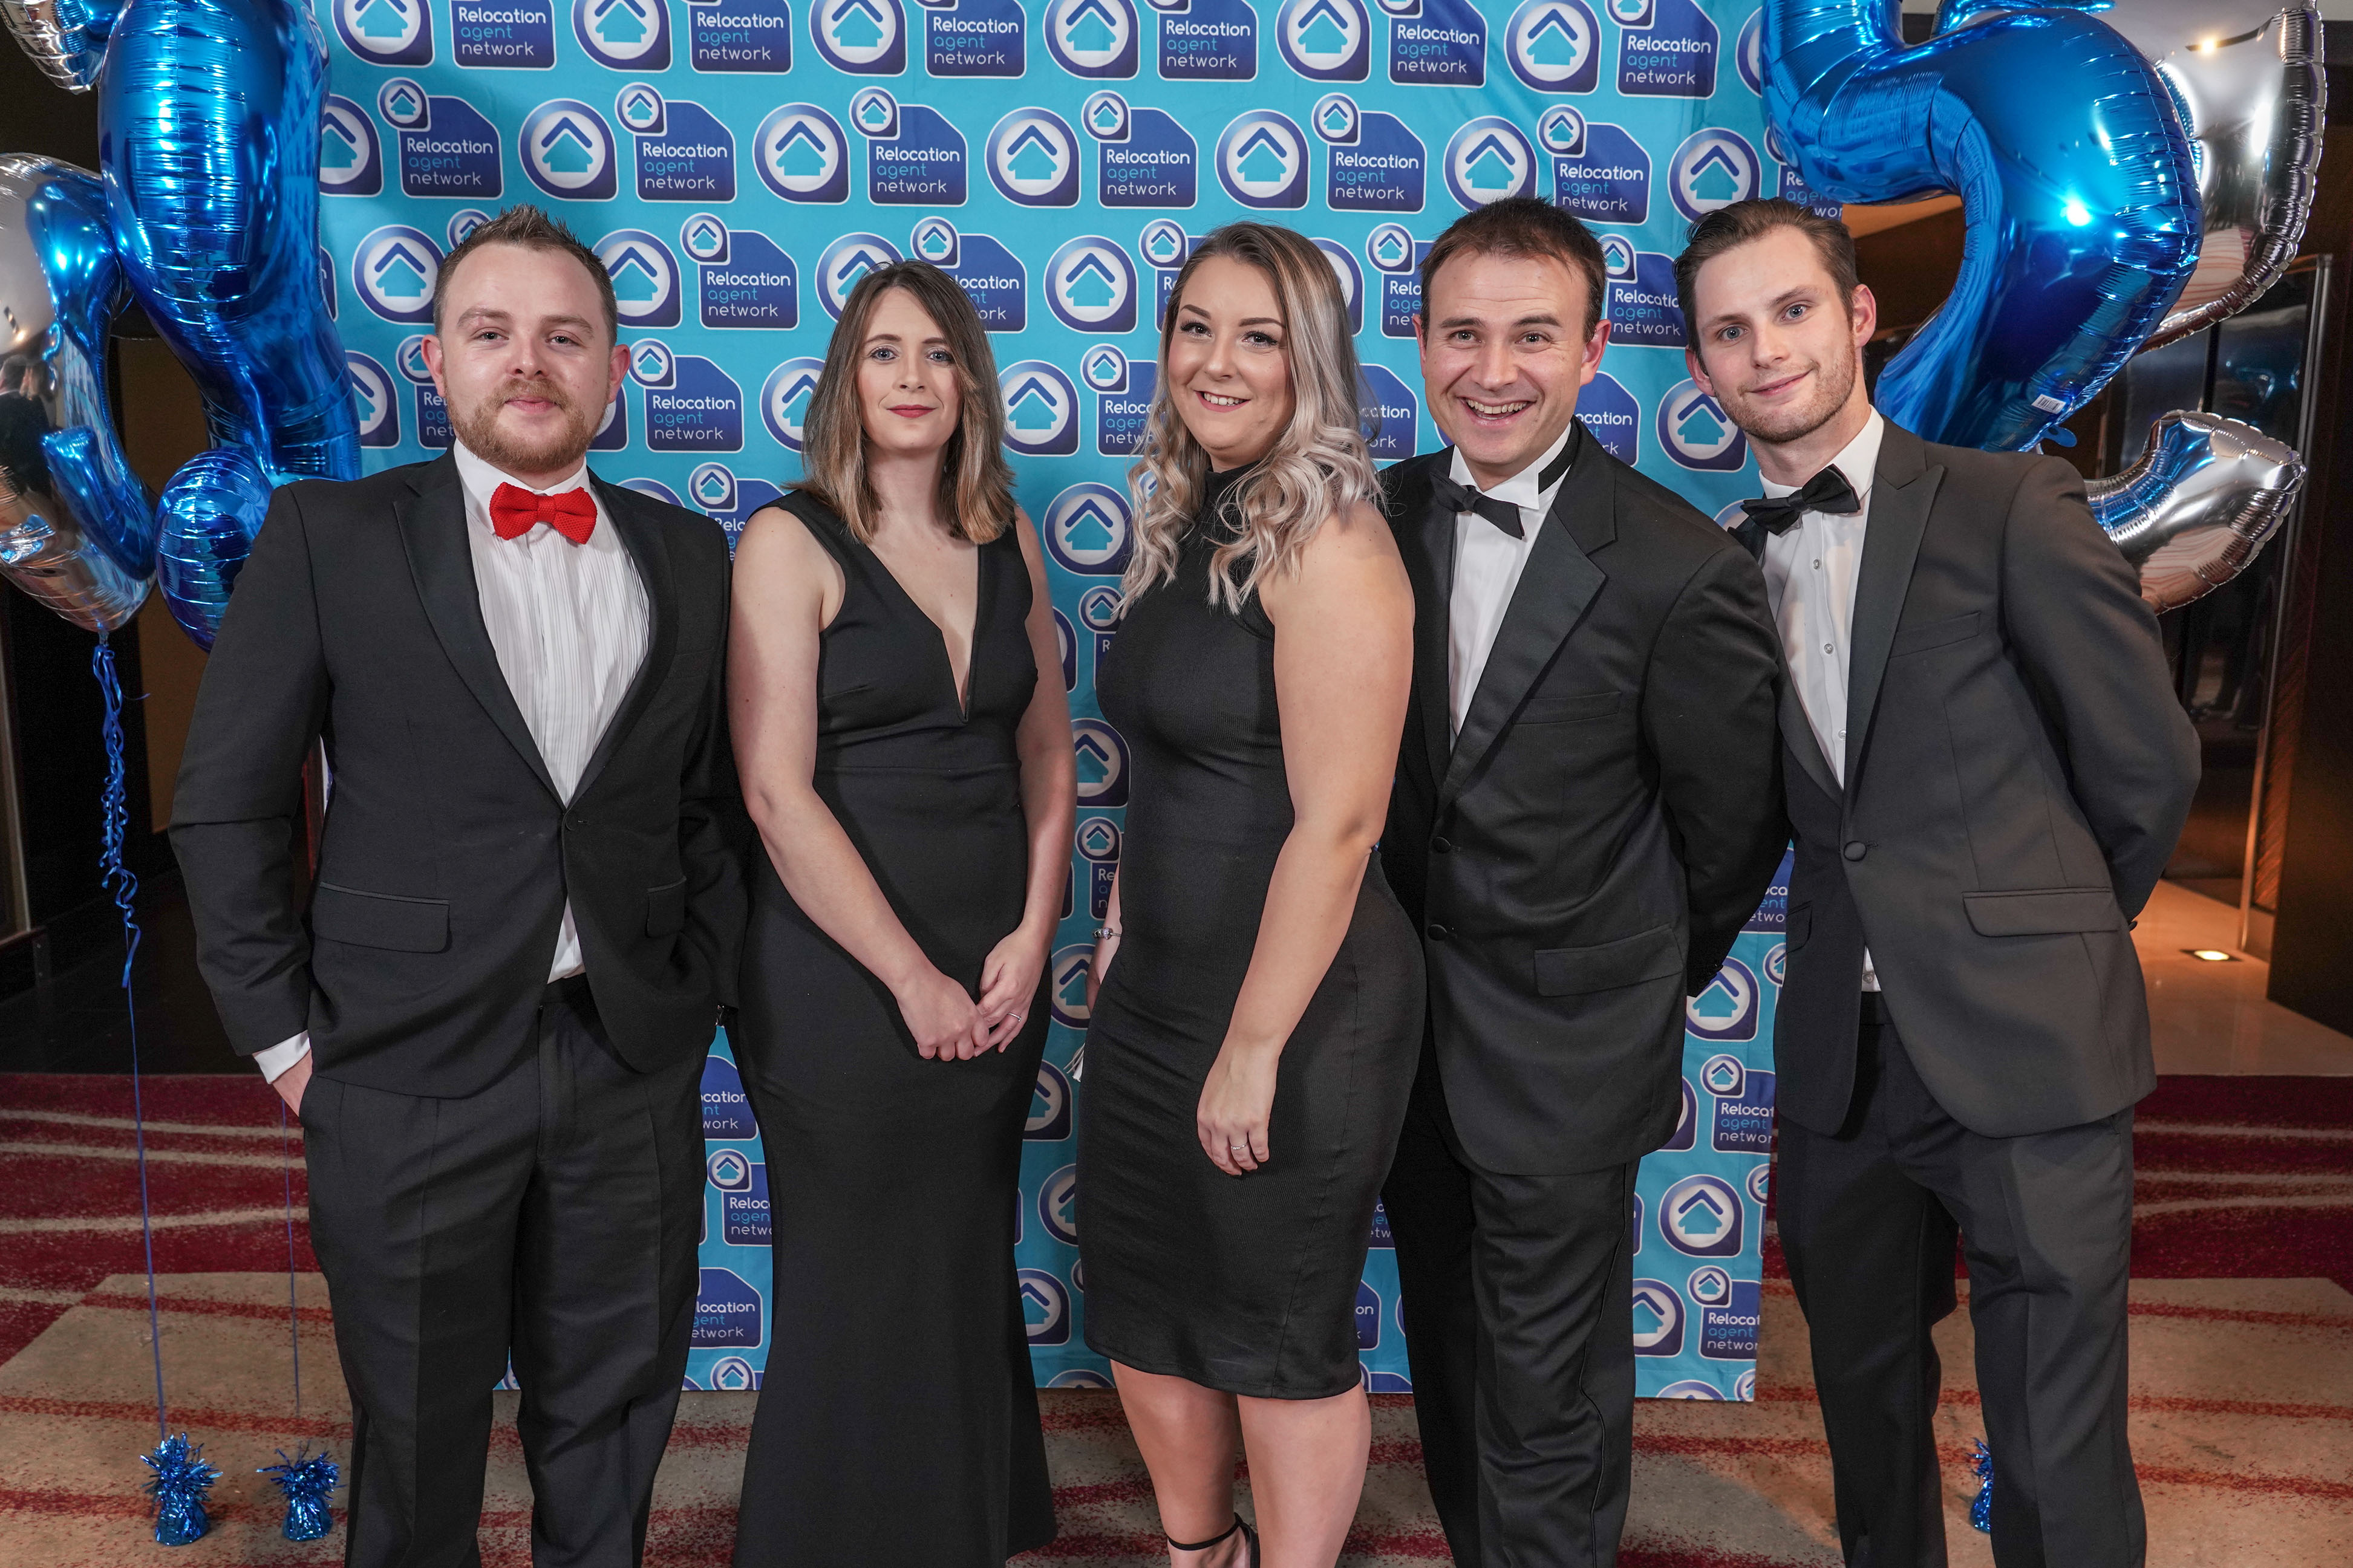 Webbers Estate Agents named Best Agent in the South West